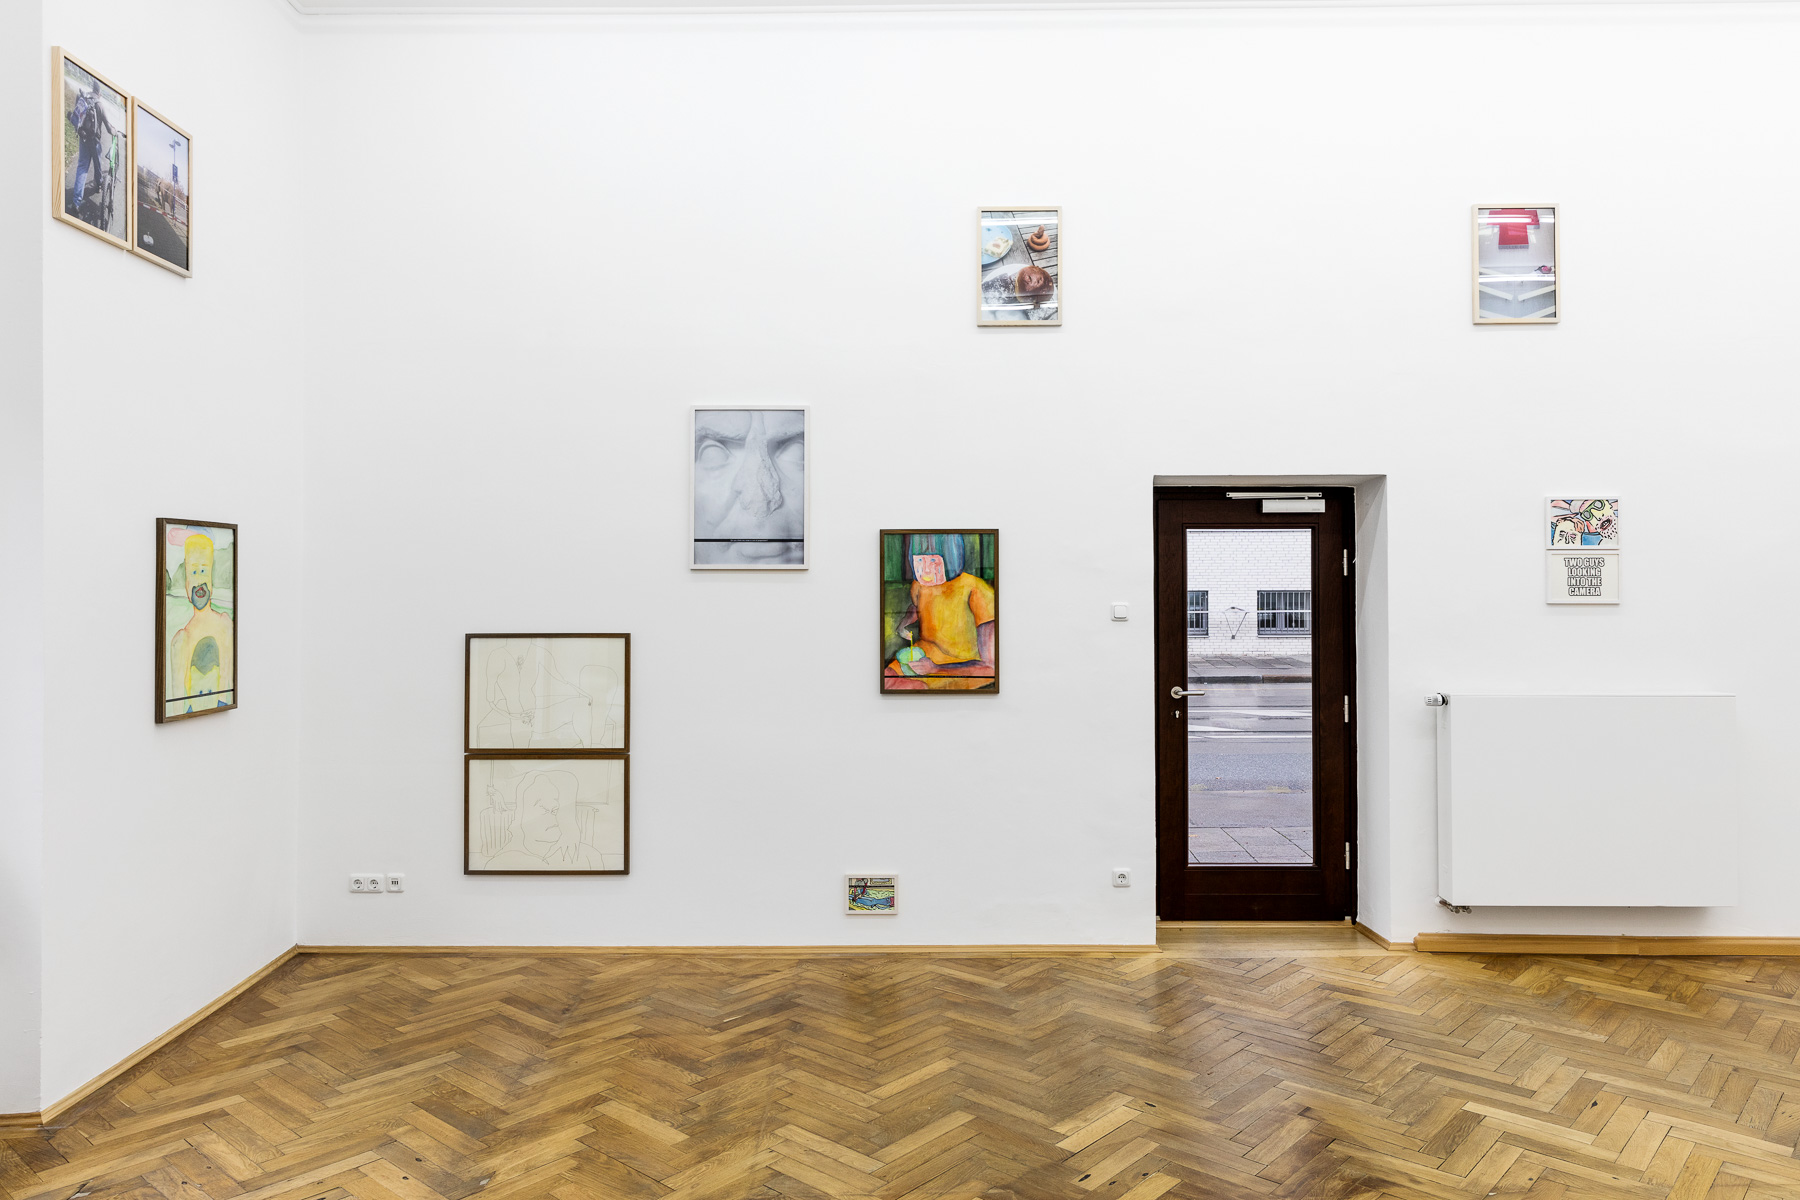 installation view, Sebastian Jung, It's not about me, 2016